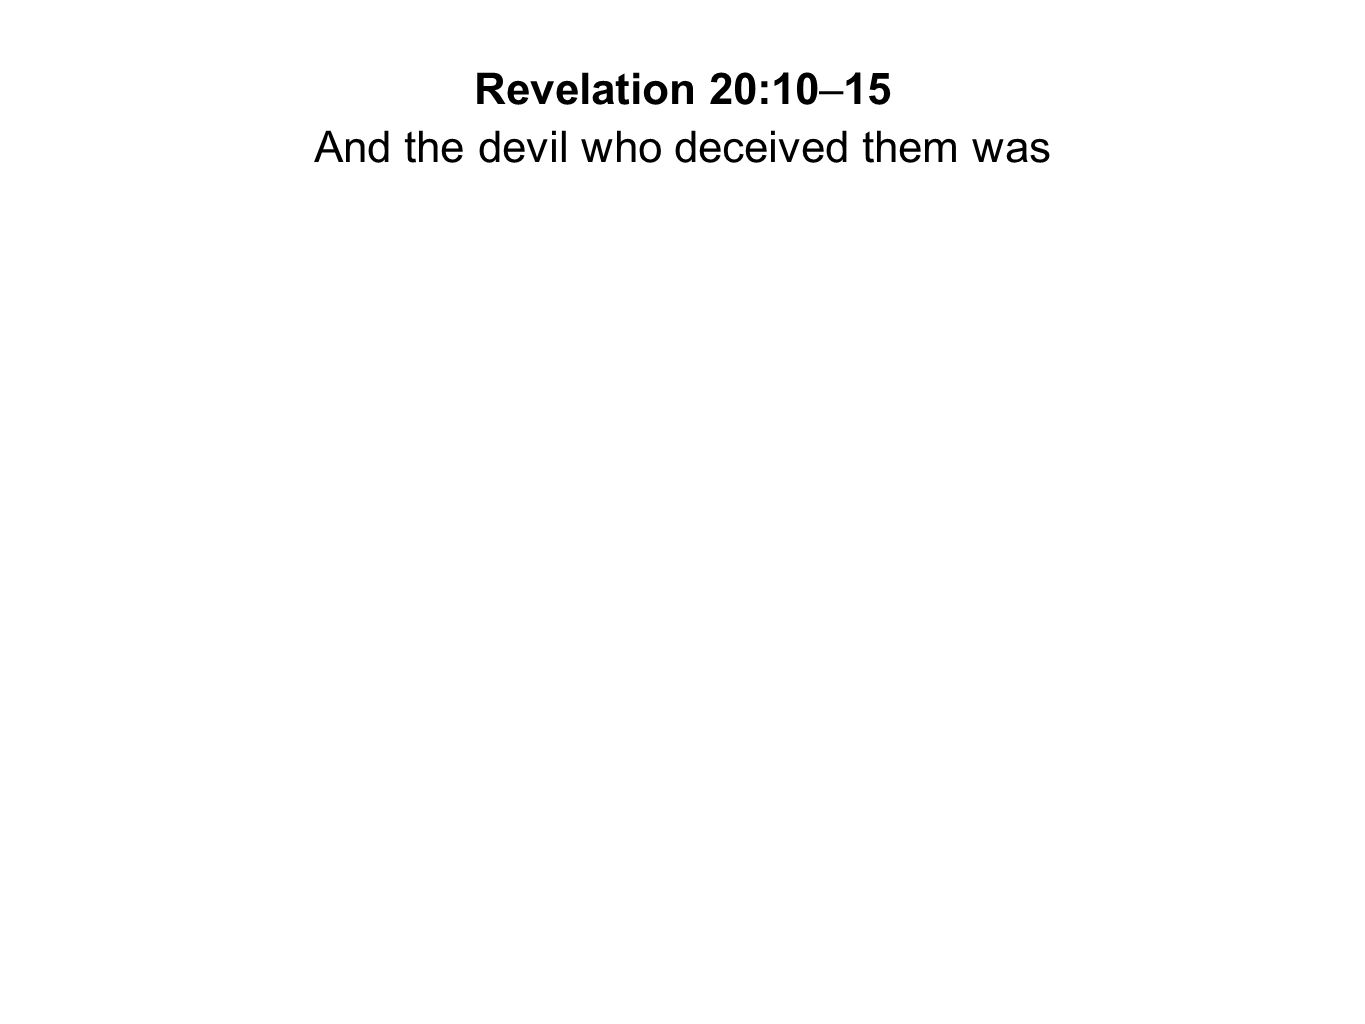 And the devil who deceived them was